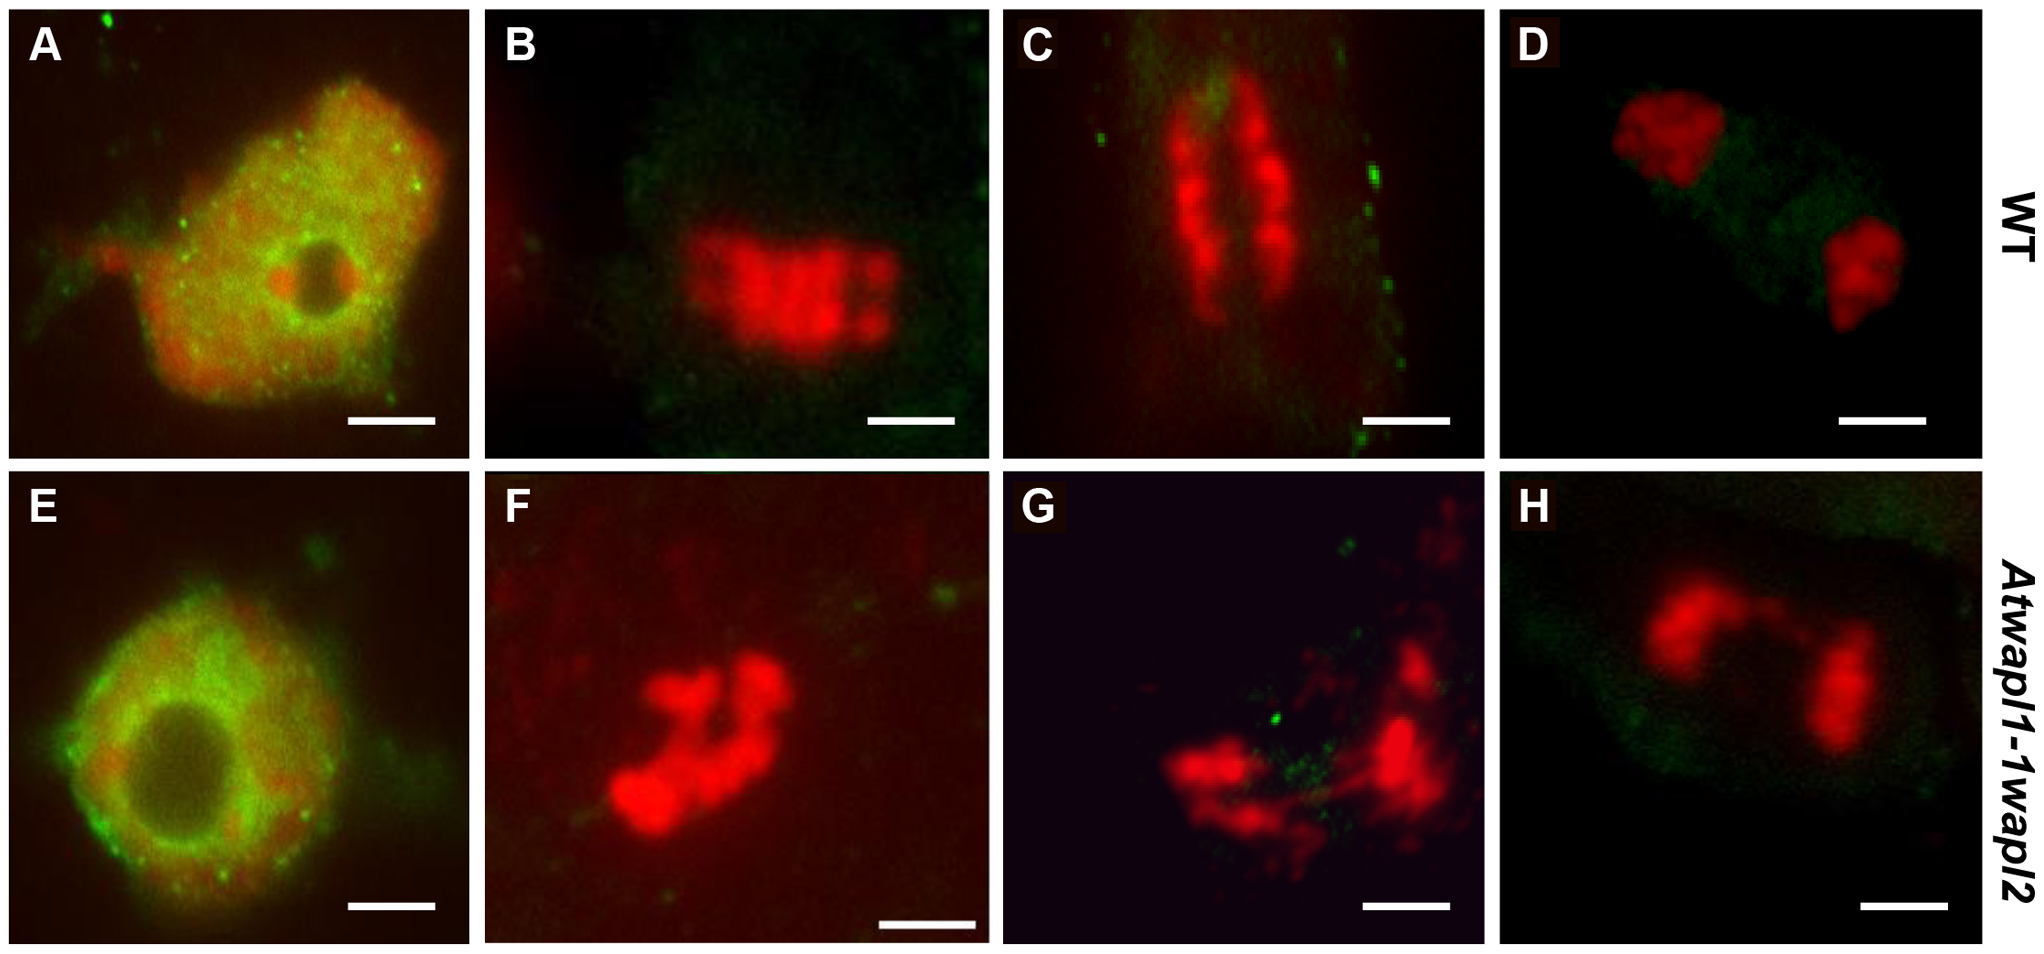 Cohesin is released normally in <i>Atwapl1-1wapl2</i> root tip cells.